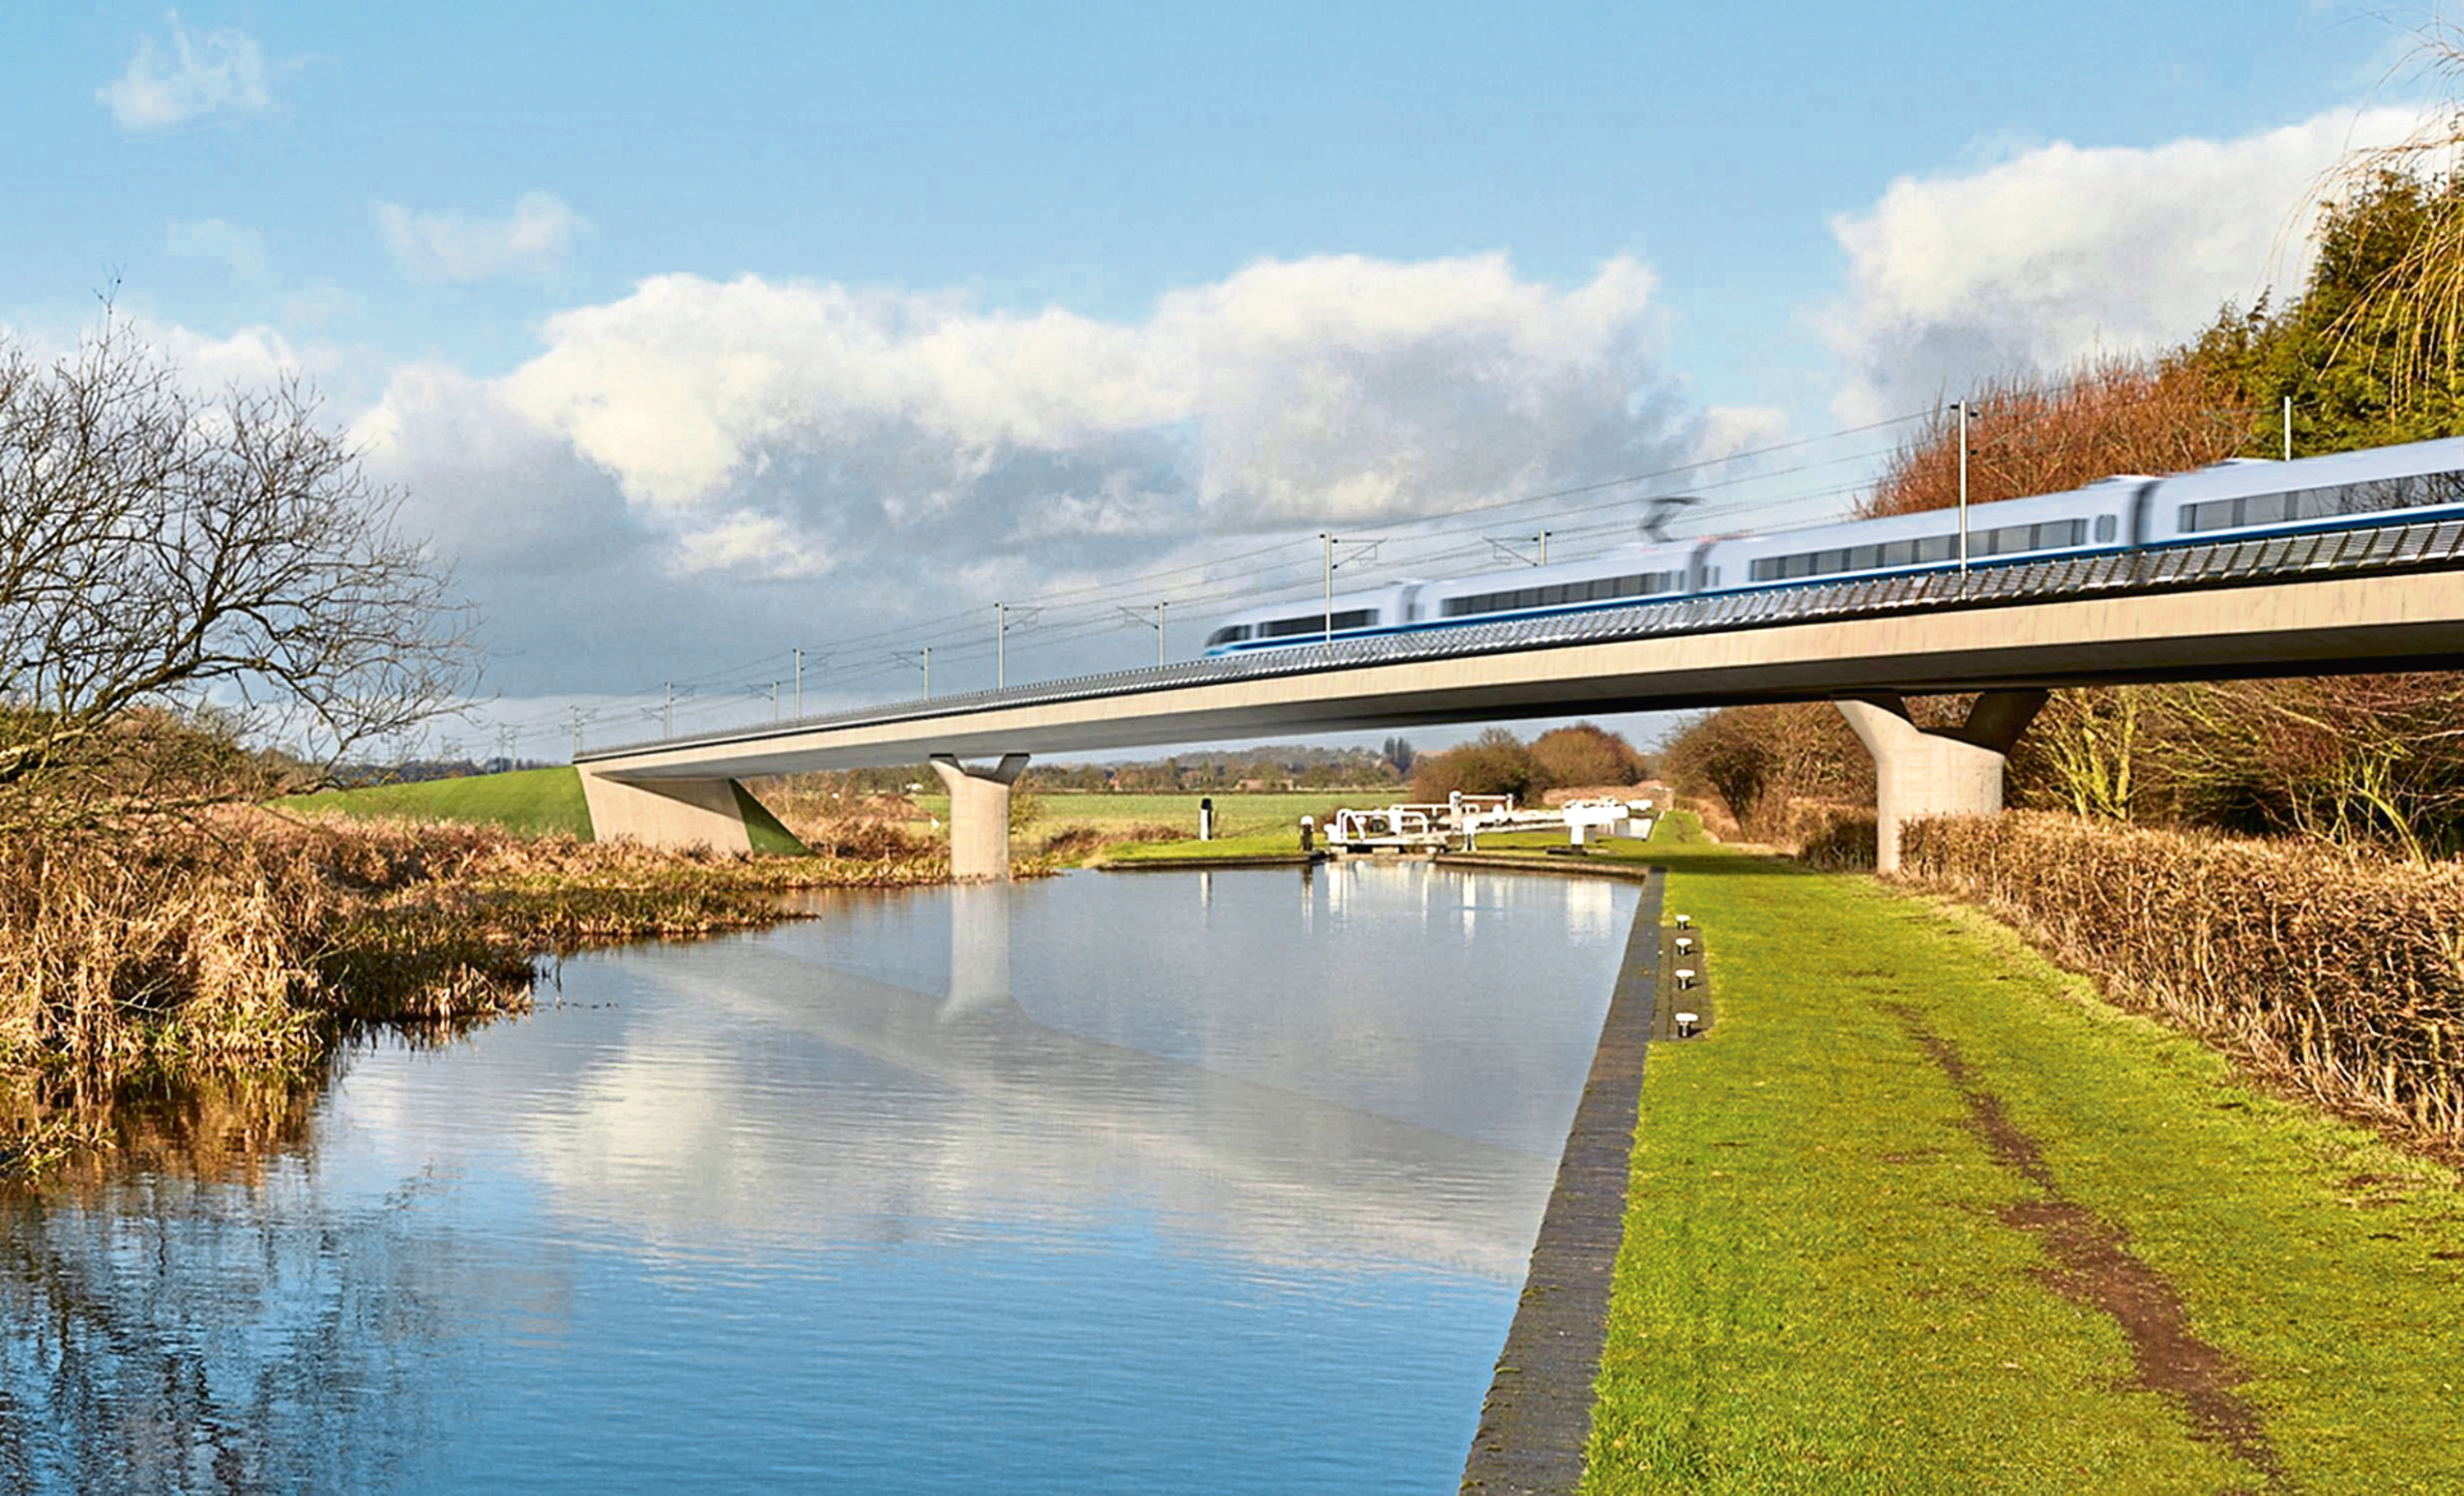 Aberdeen MP Stephen Flynn has said HS2 would spell 'economic disaster' for the city